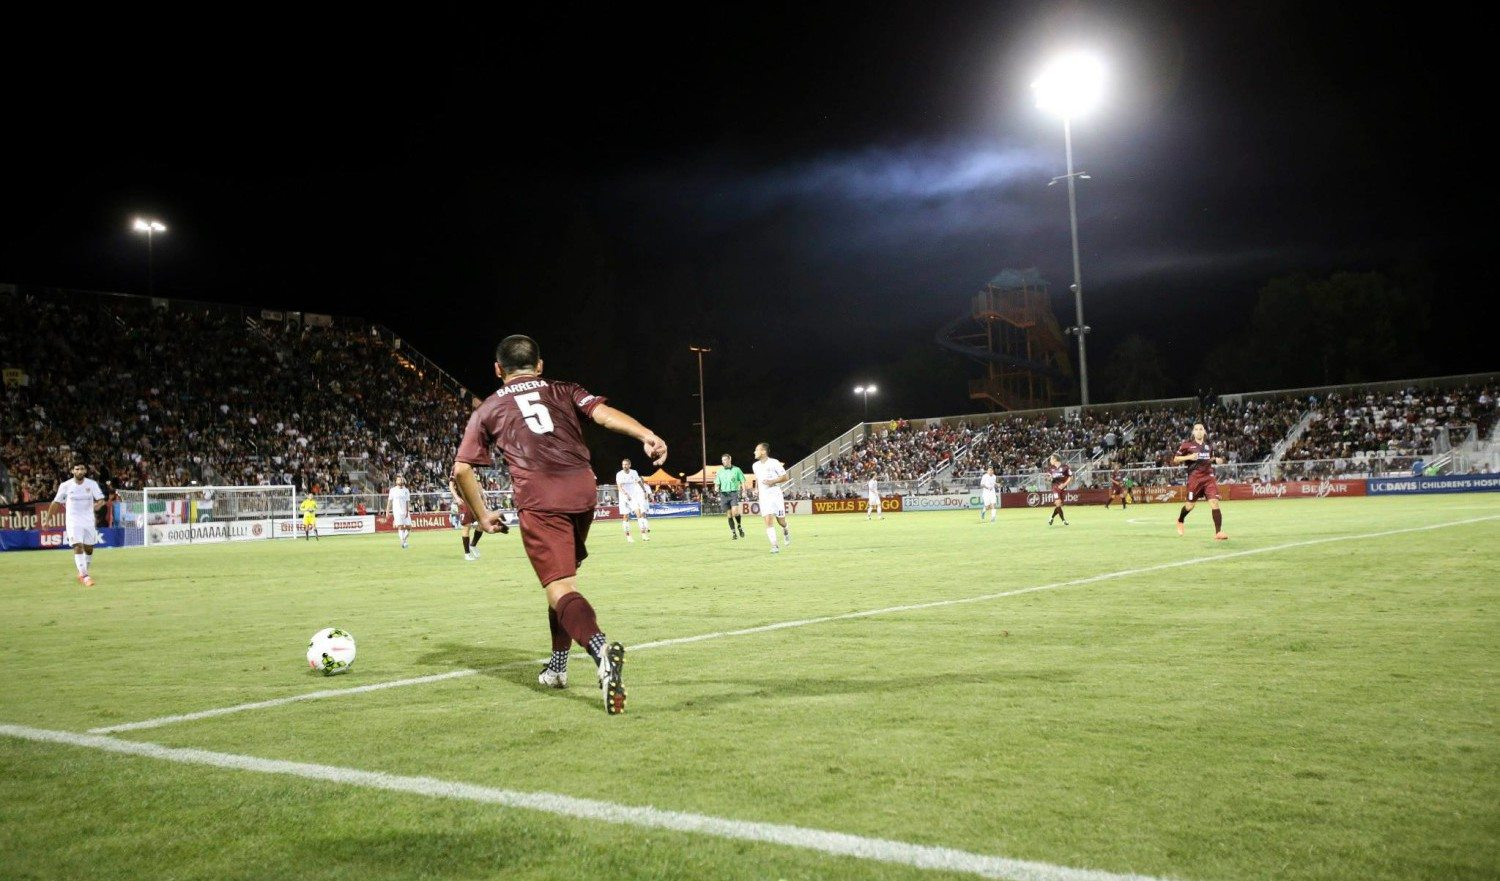 Game On! Coldwell Banker Partners with Sacramento Republic FC